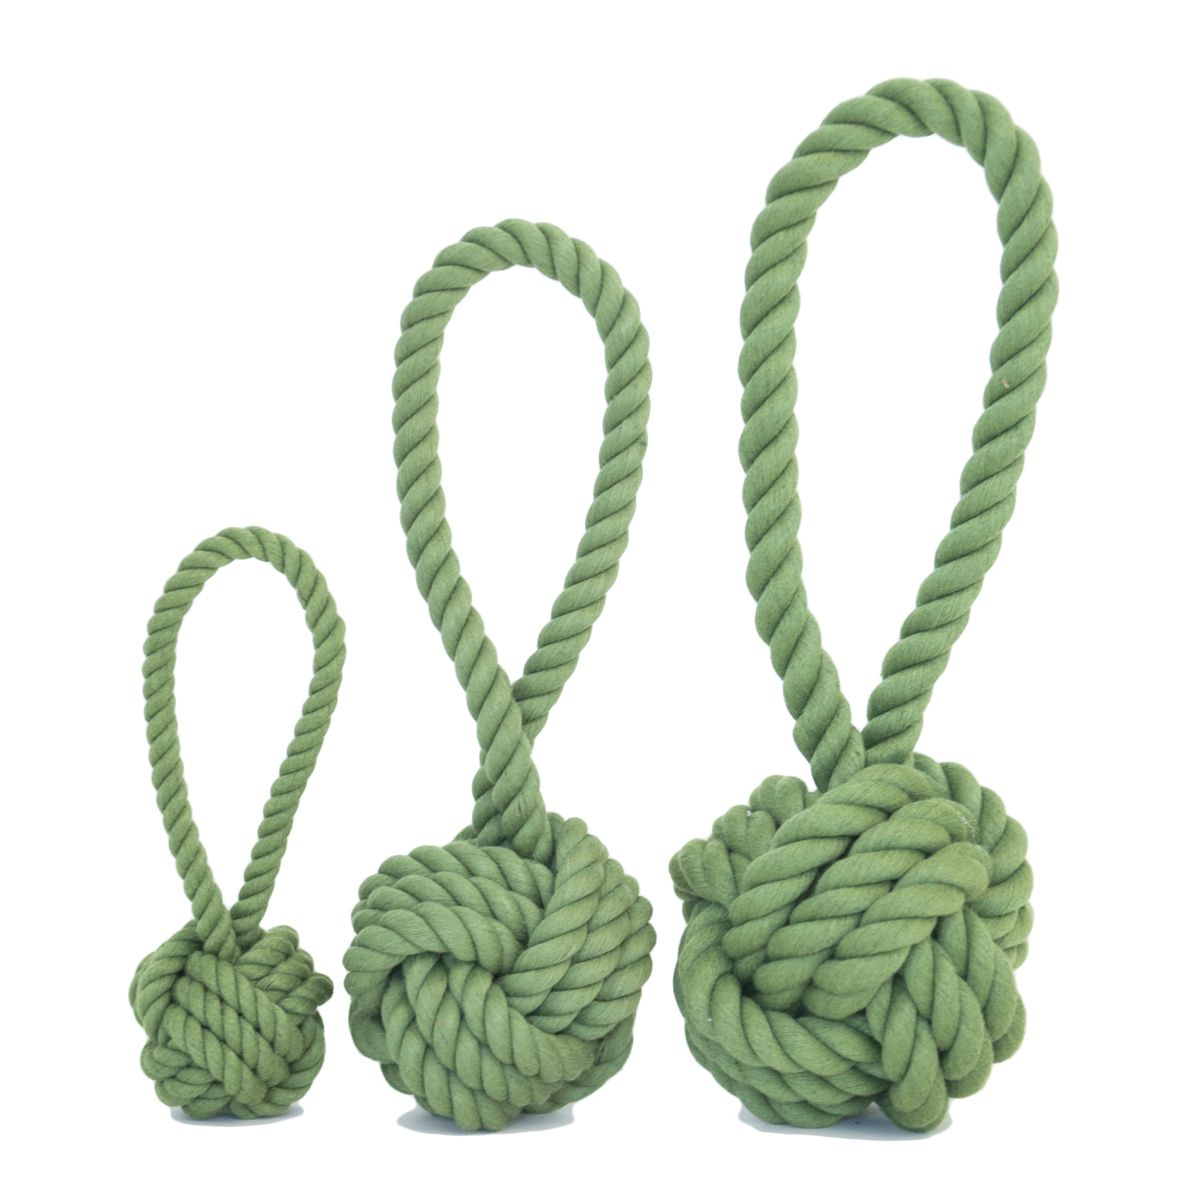 'Green' dog products. Harry Barker tug and toss toys